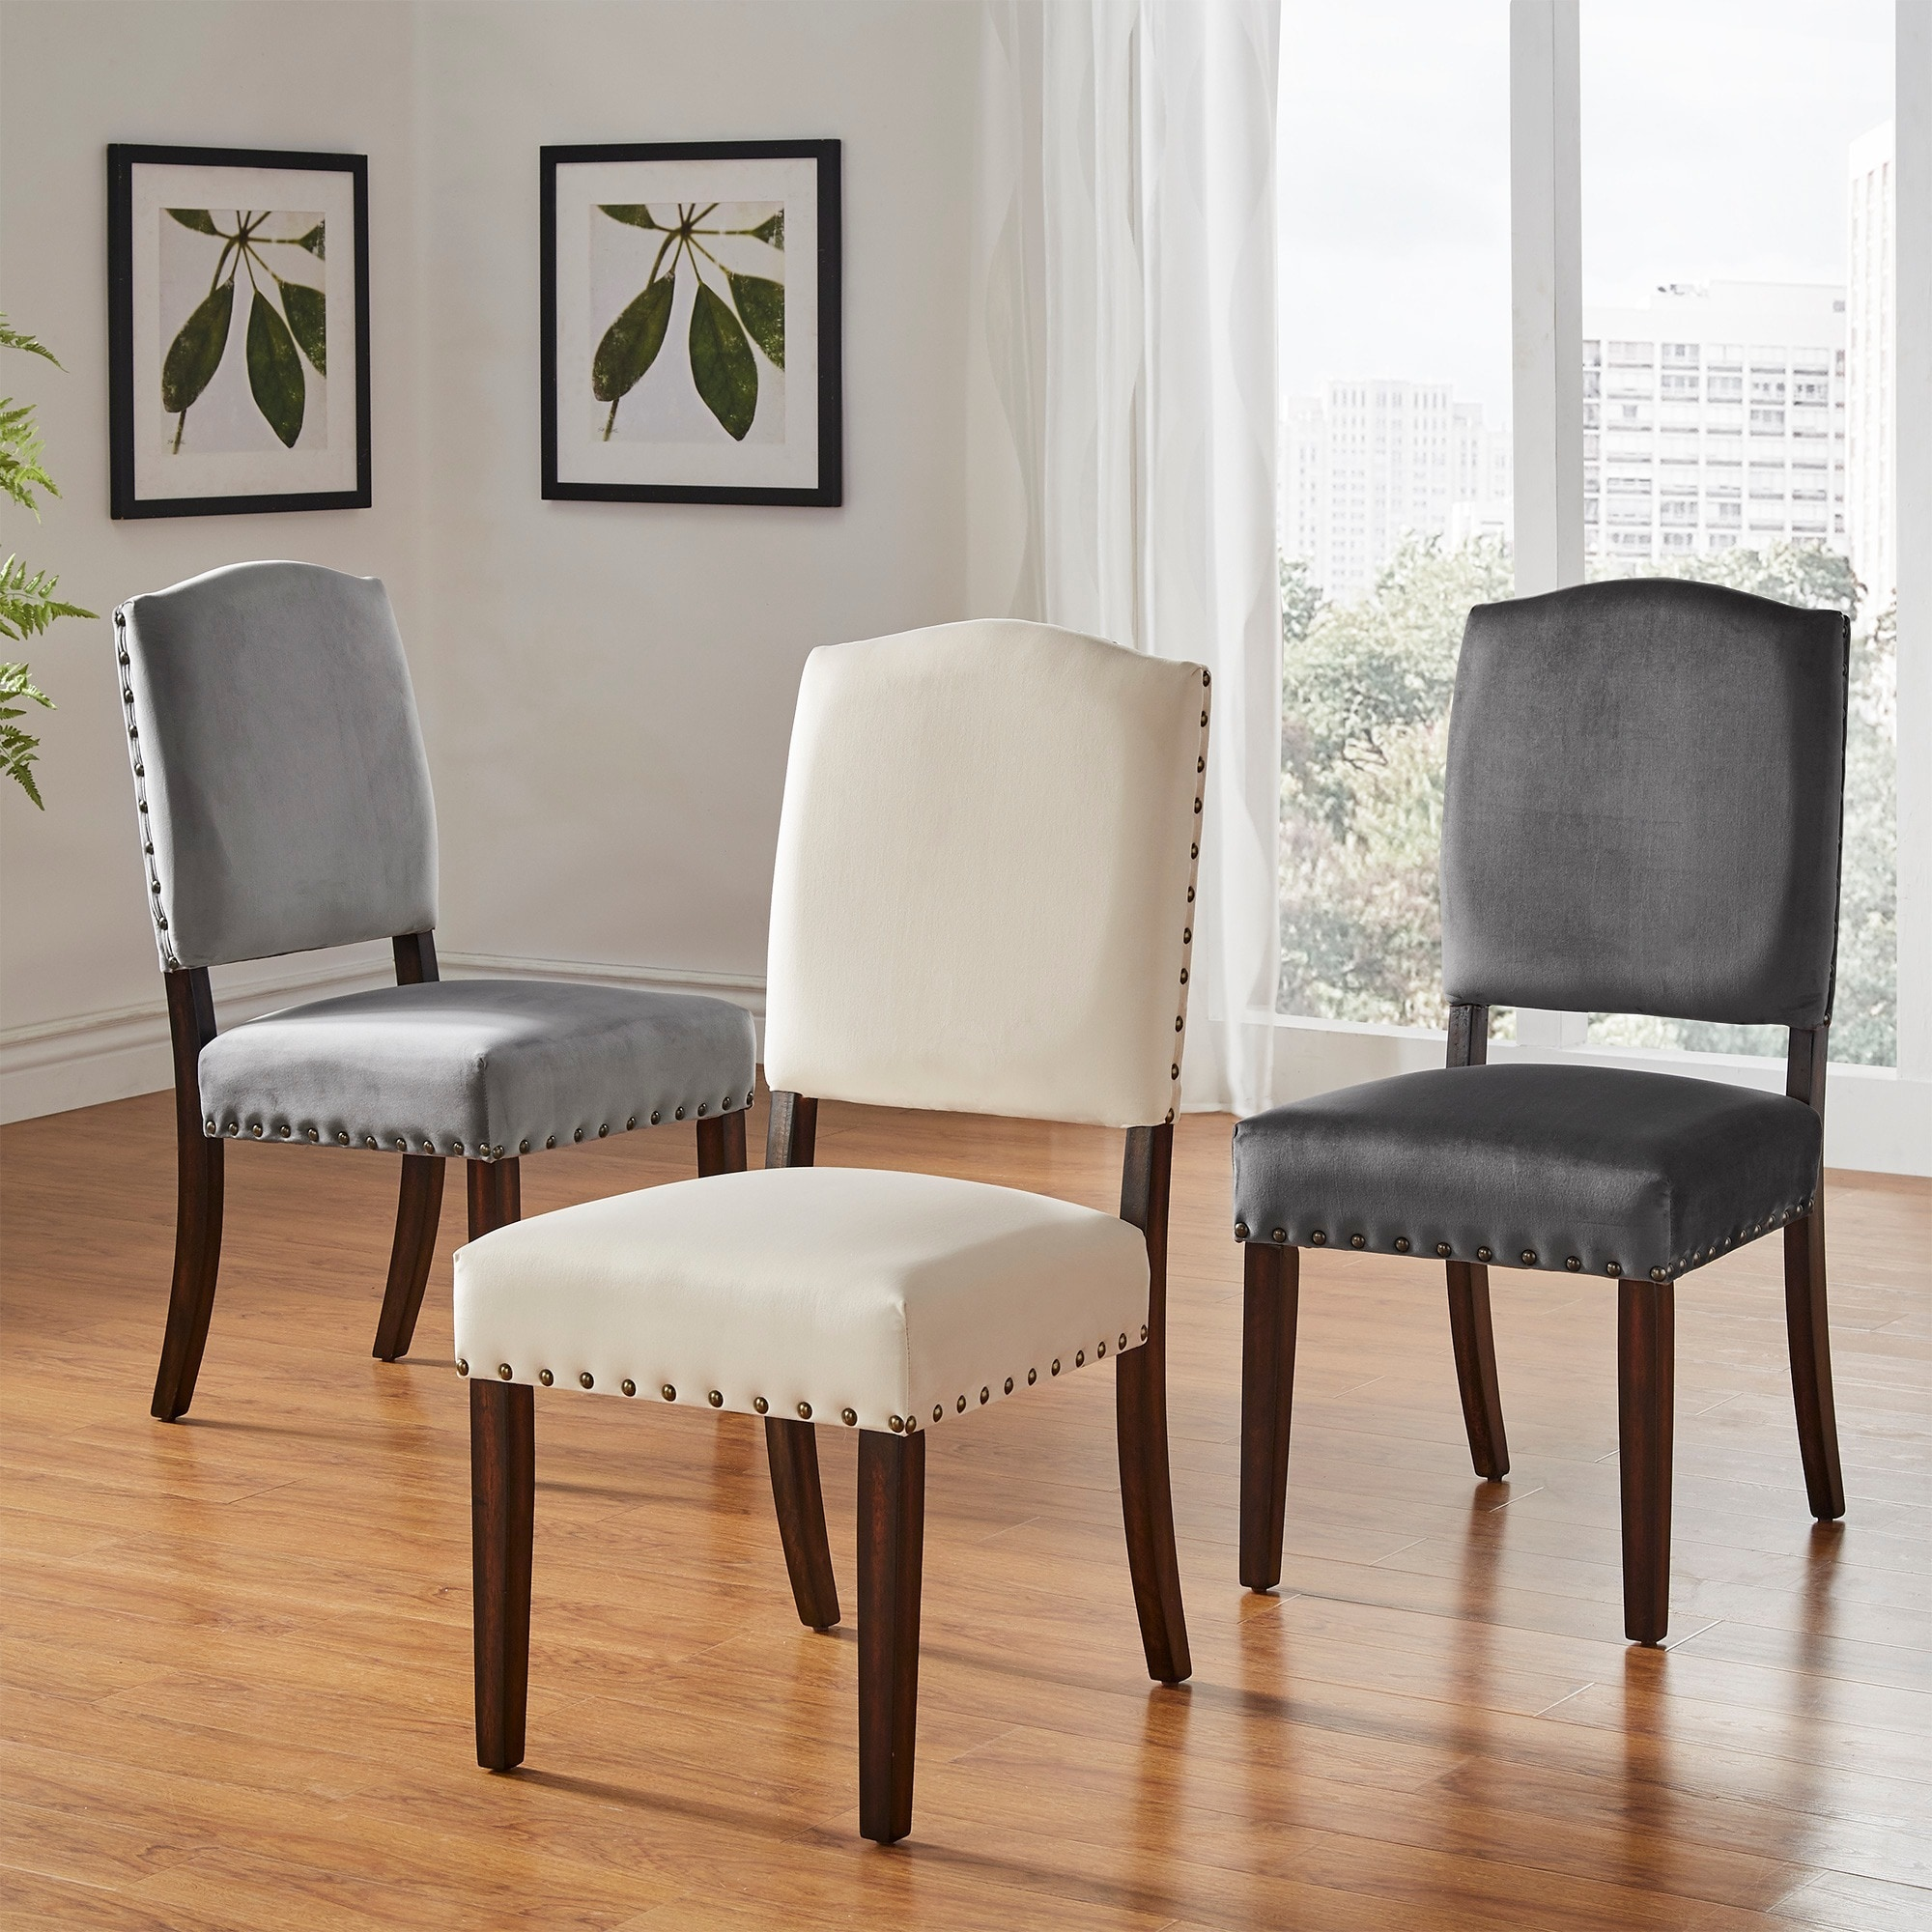 Marvelous Benchwright Ii Velvet Nailhead Dining Chairs Set Of 2 By Inspire Q Bold Gmtry Best Dining Table And Chair Ideas Images Gmtryco